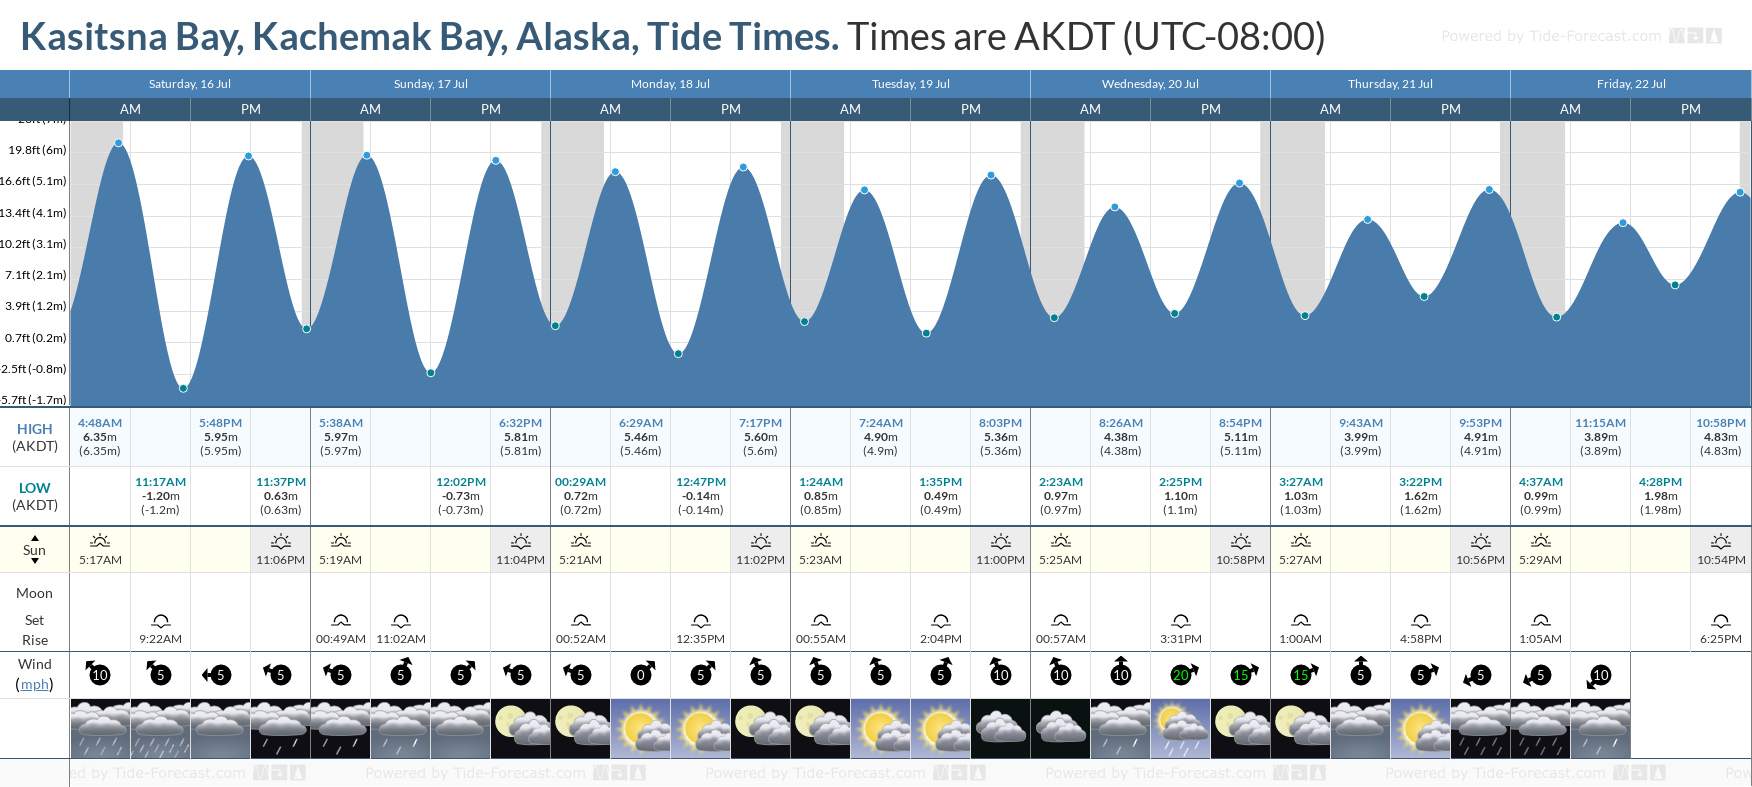 Kasitsna Bay, Kachemak Bay, Alaska Tide Chart including high and low tide tide times for the next 7 days